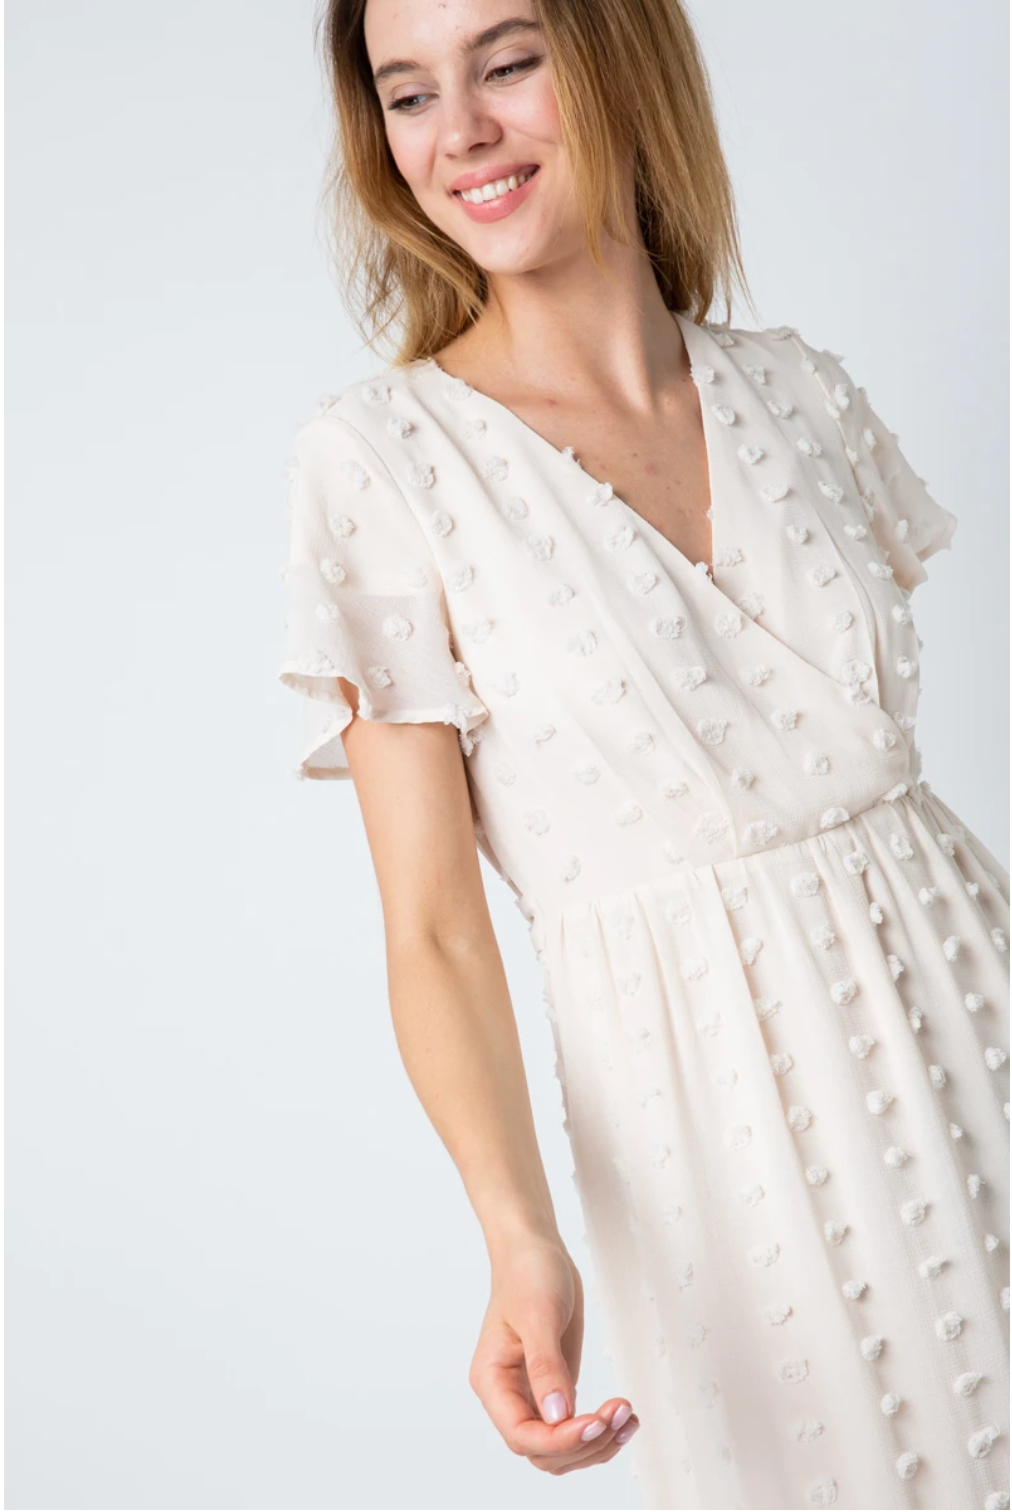 Davina Swiss Pom Dress in Ivory